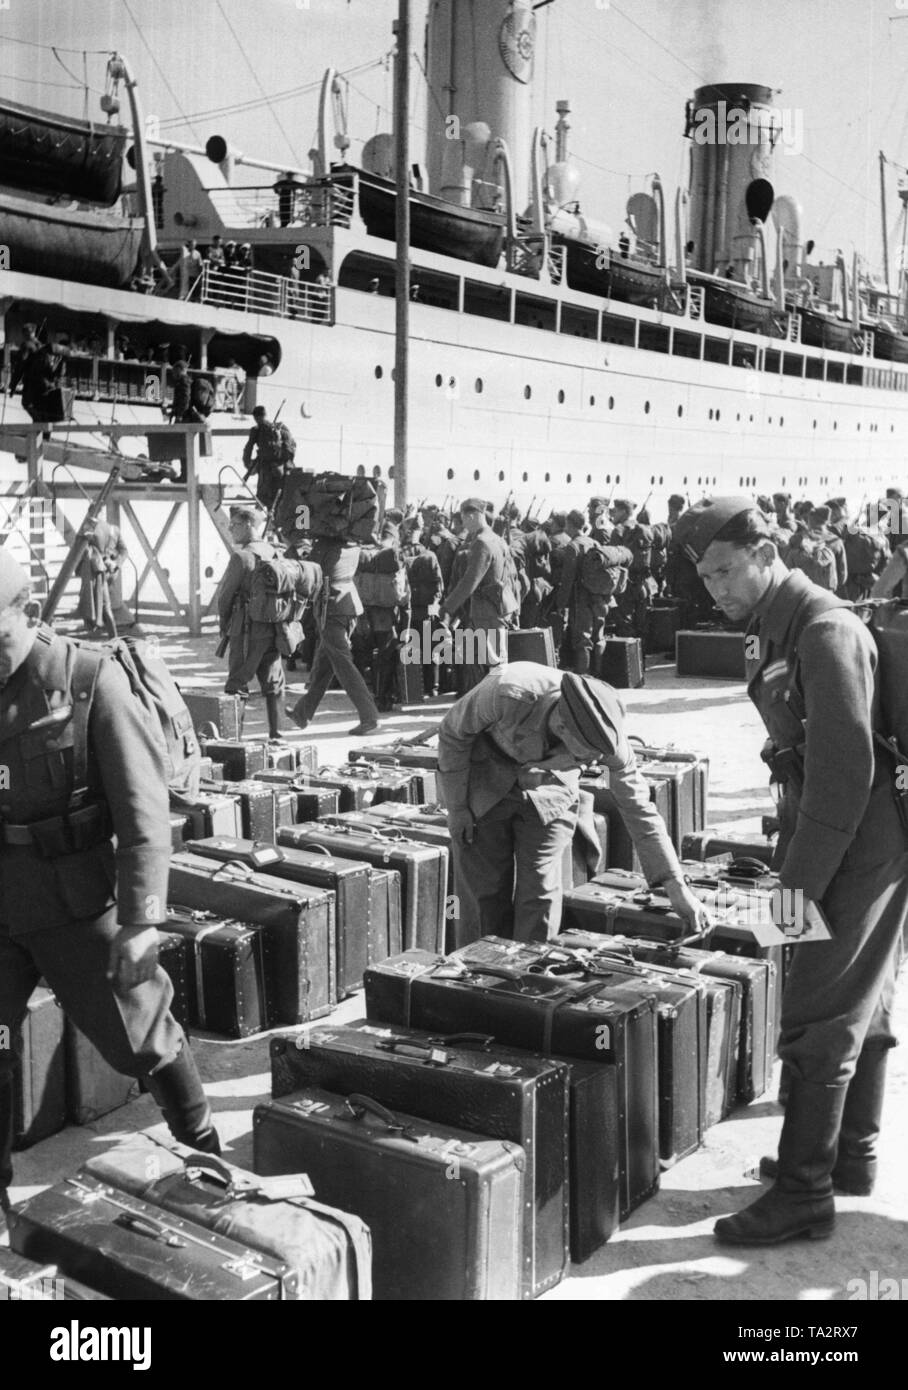 Photo of German soldiers of the Condor Legion during their return journey at the quay wall in the port of Vigo, Galicia on May 30, 1939. In the background, the Kraft durch Freude ('Strength through Joy') steamboat (KdF-fleet), 'The German' ('Bremer Vulkan', 1924, previously 'Sierra Morena'), which was to take the Spanish fighters home. At the front, the luggage of the soldiers. - Stock Image